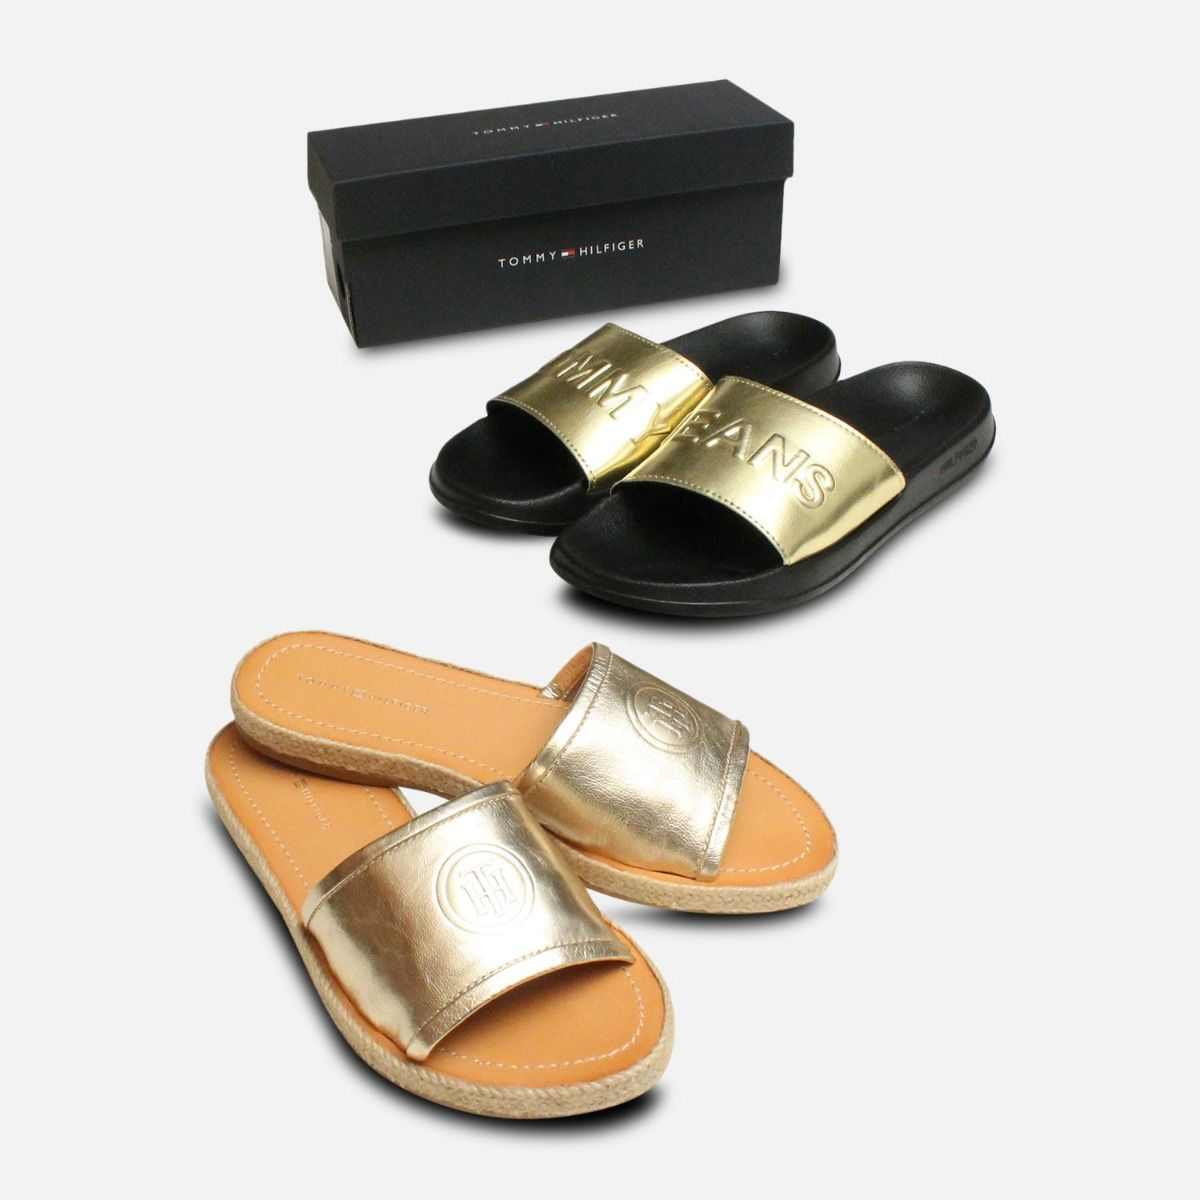 7d2873e33 Pool Slides by Tommy Jeans in Black   Gold Metallic